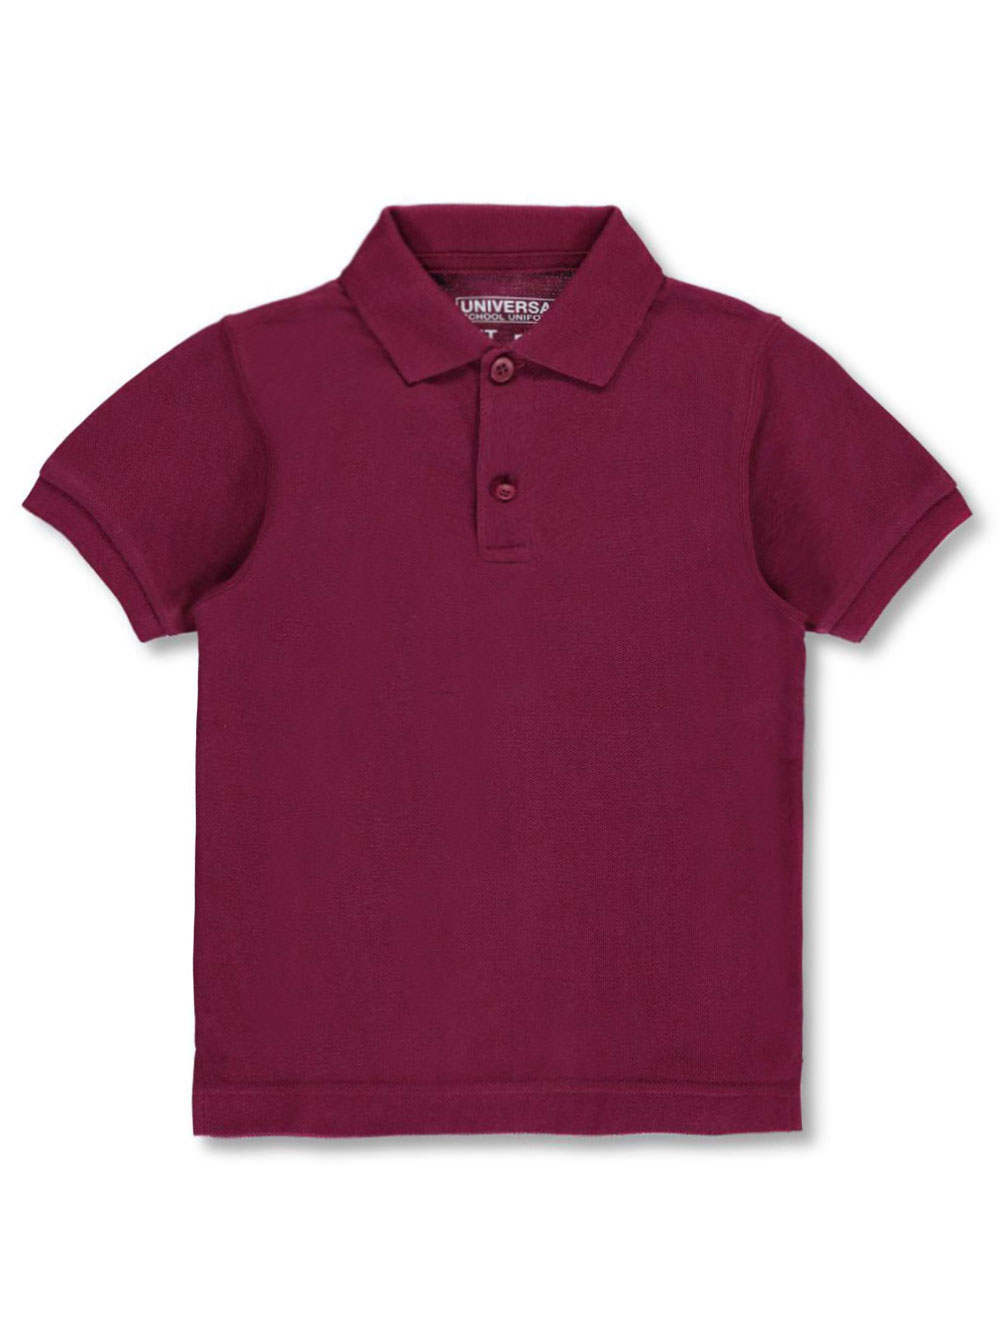 Image of Universal Unisex SS Pique Polo Adult Sizes S  XXL  burgundy m